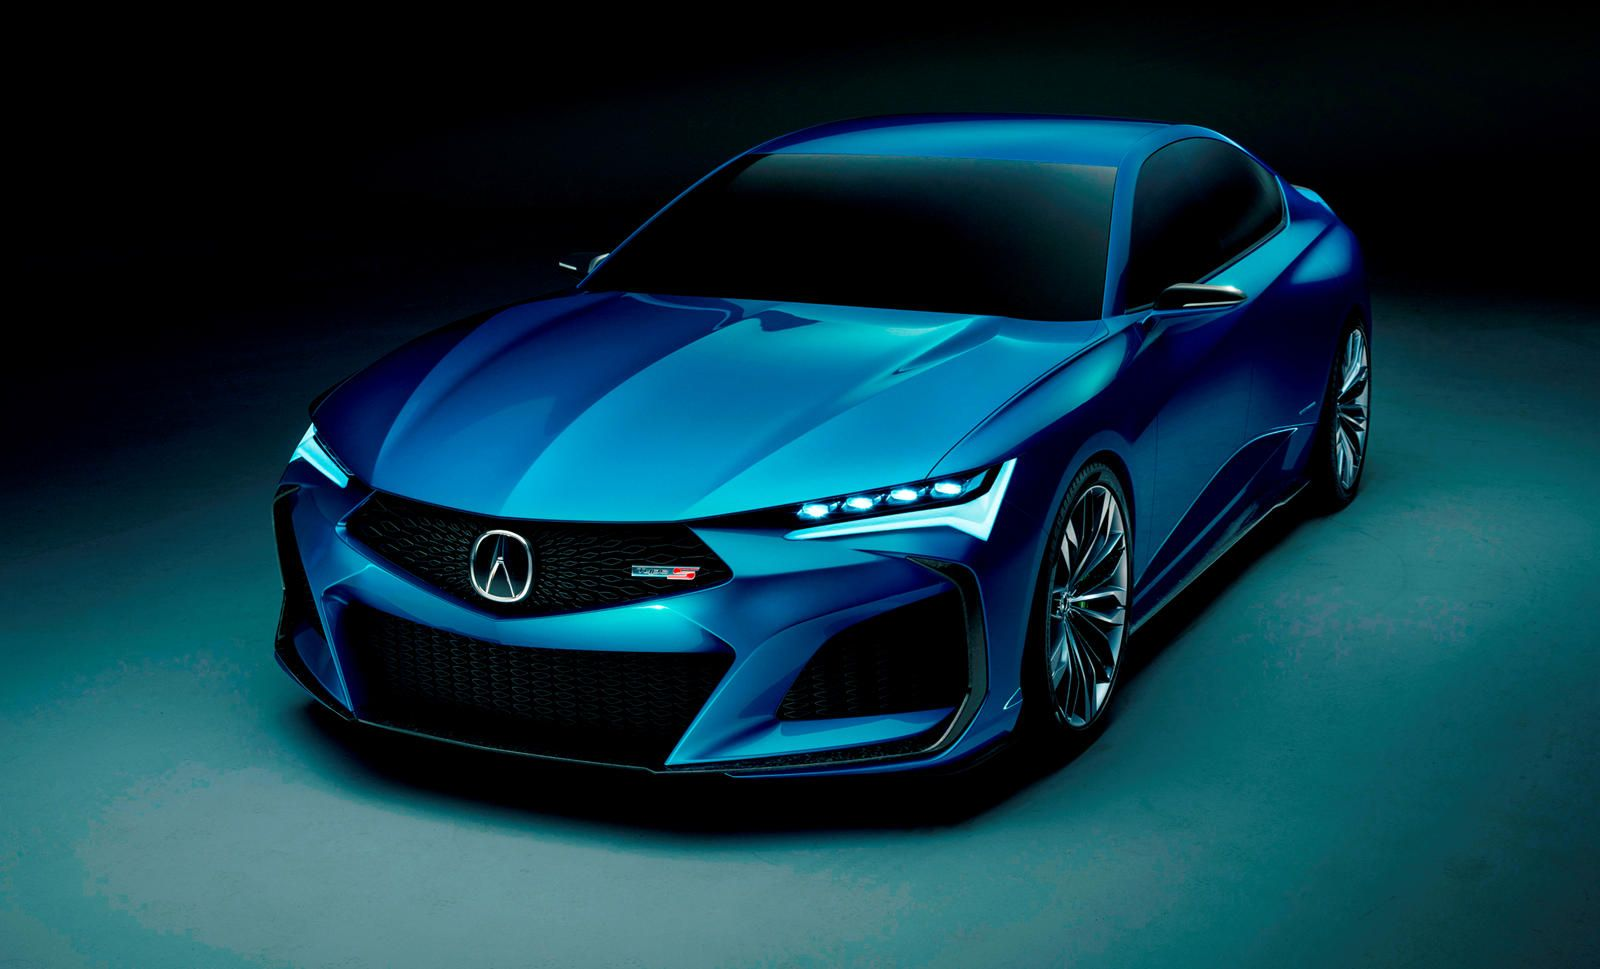 Acura S Next Model Set For Online Reveal And We Think We Know What It Will Be Acura Tlx Acura Performance Cars